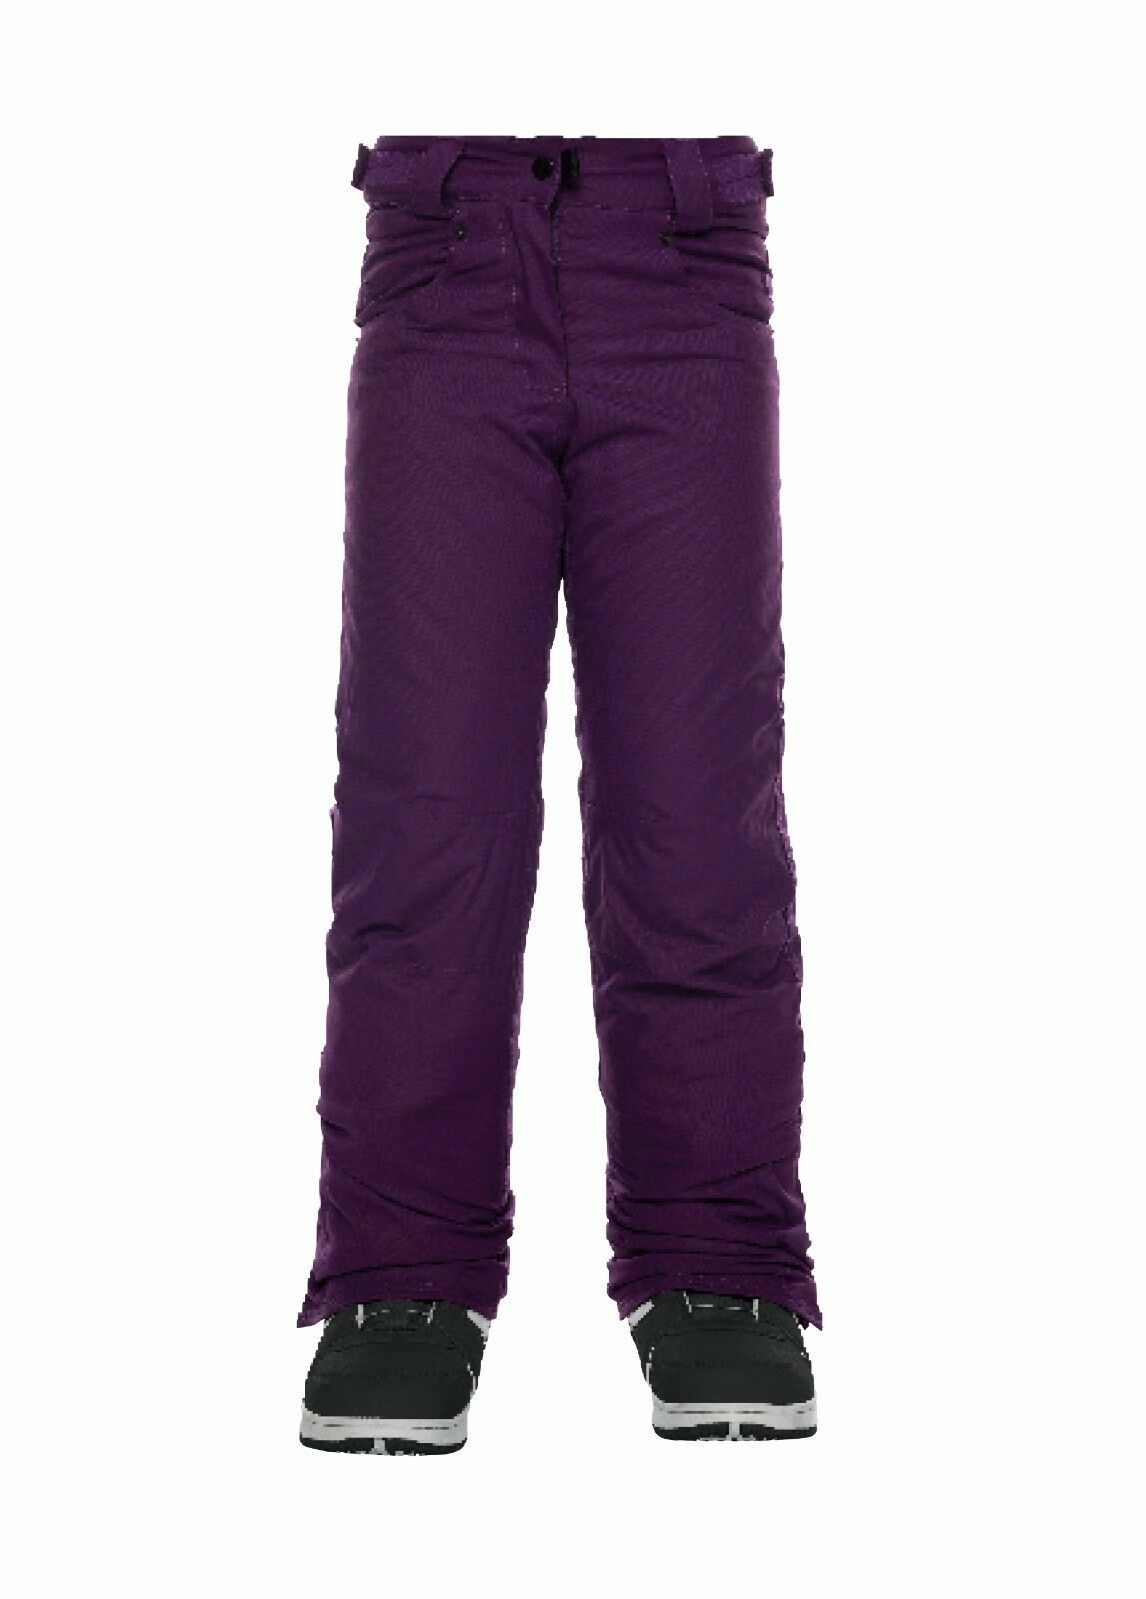 NWT 686 Elsa Kids Youth Insulated Snowboard Pant S Small 15K Pants ac710